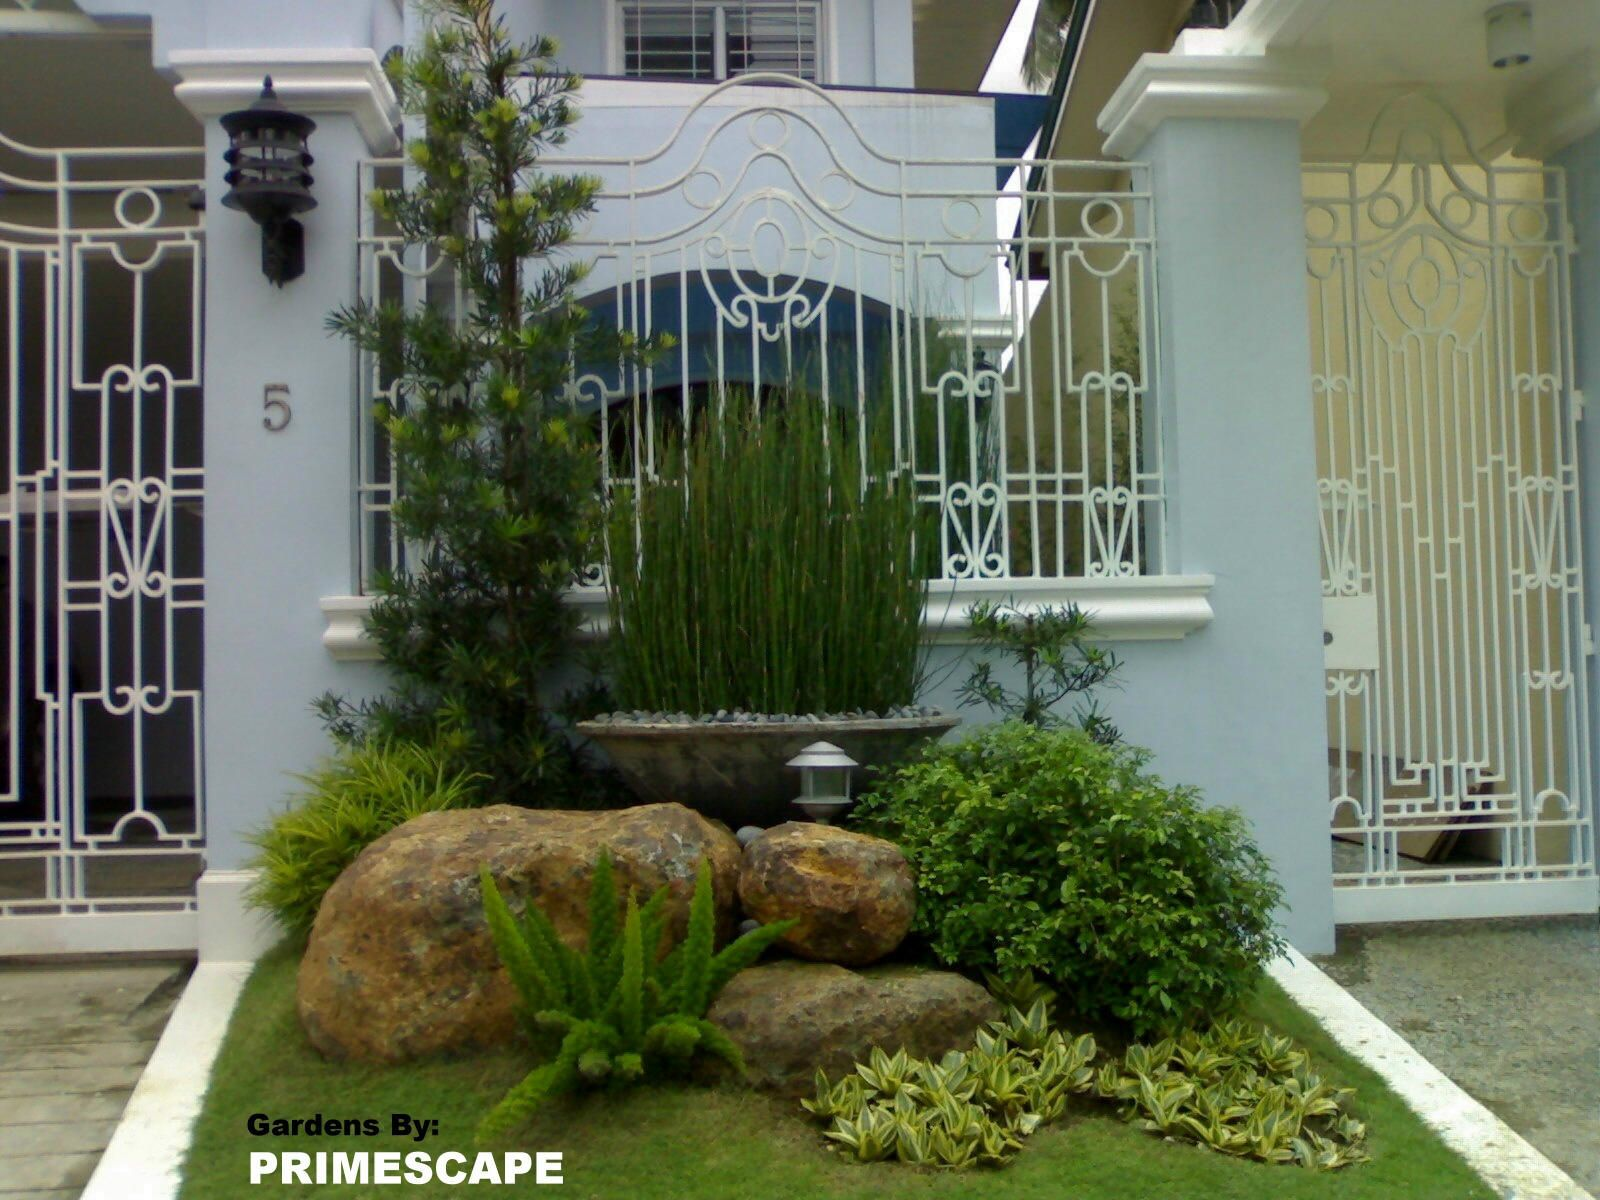 on philippines yard design house designs garden ideason philippines yard design